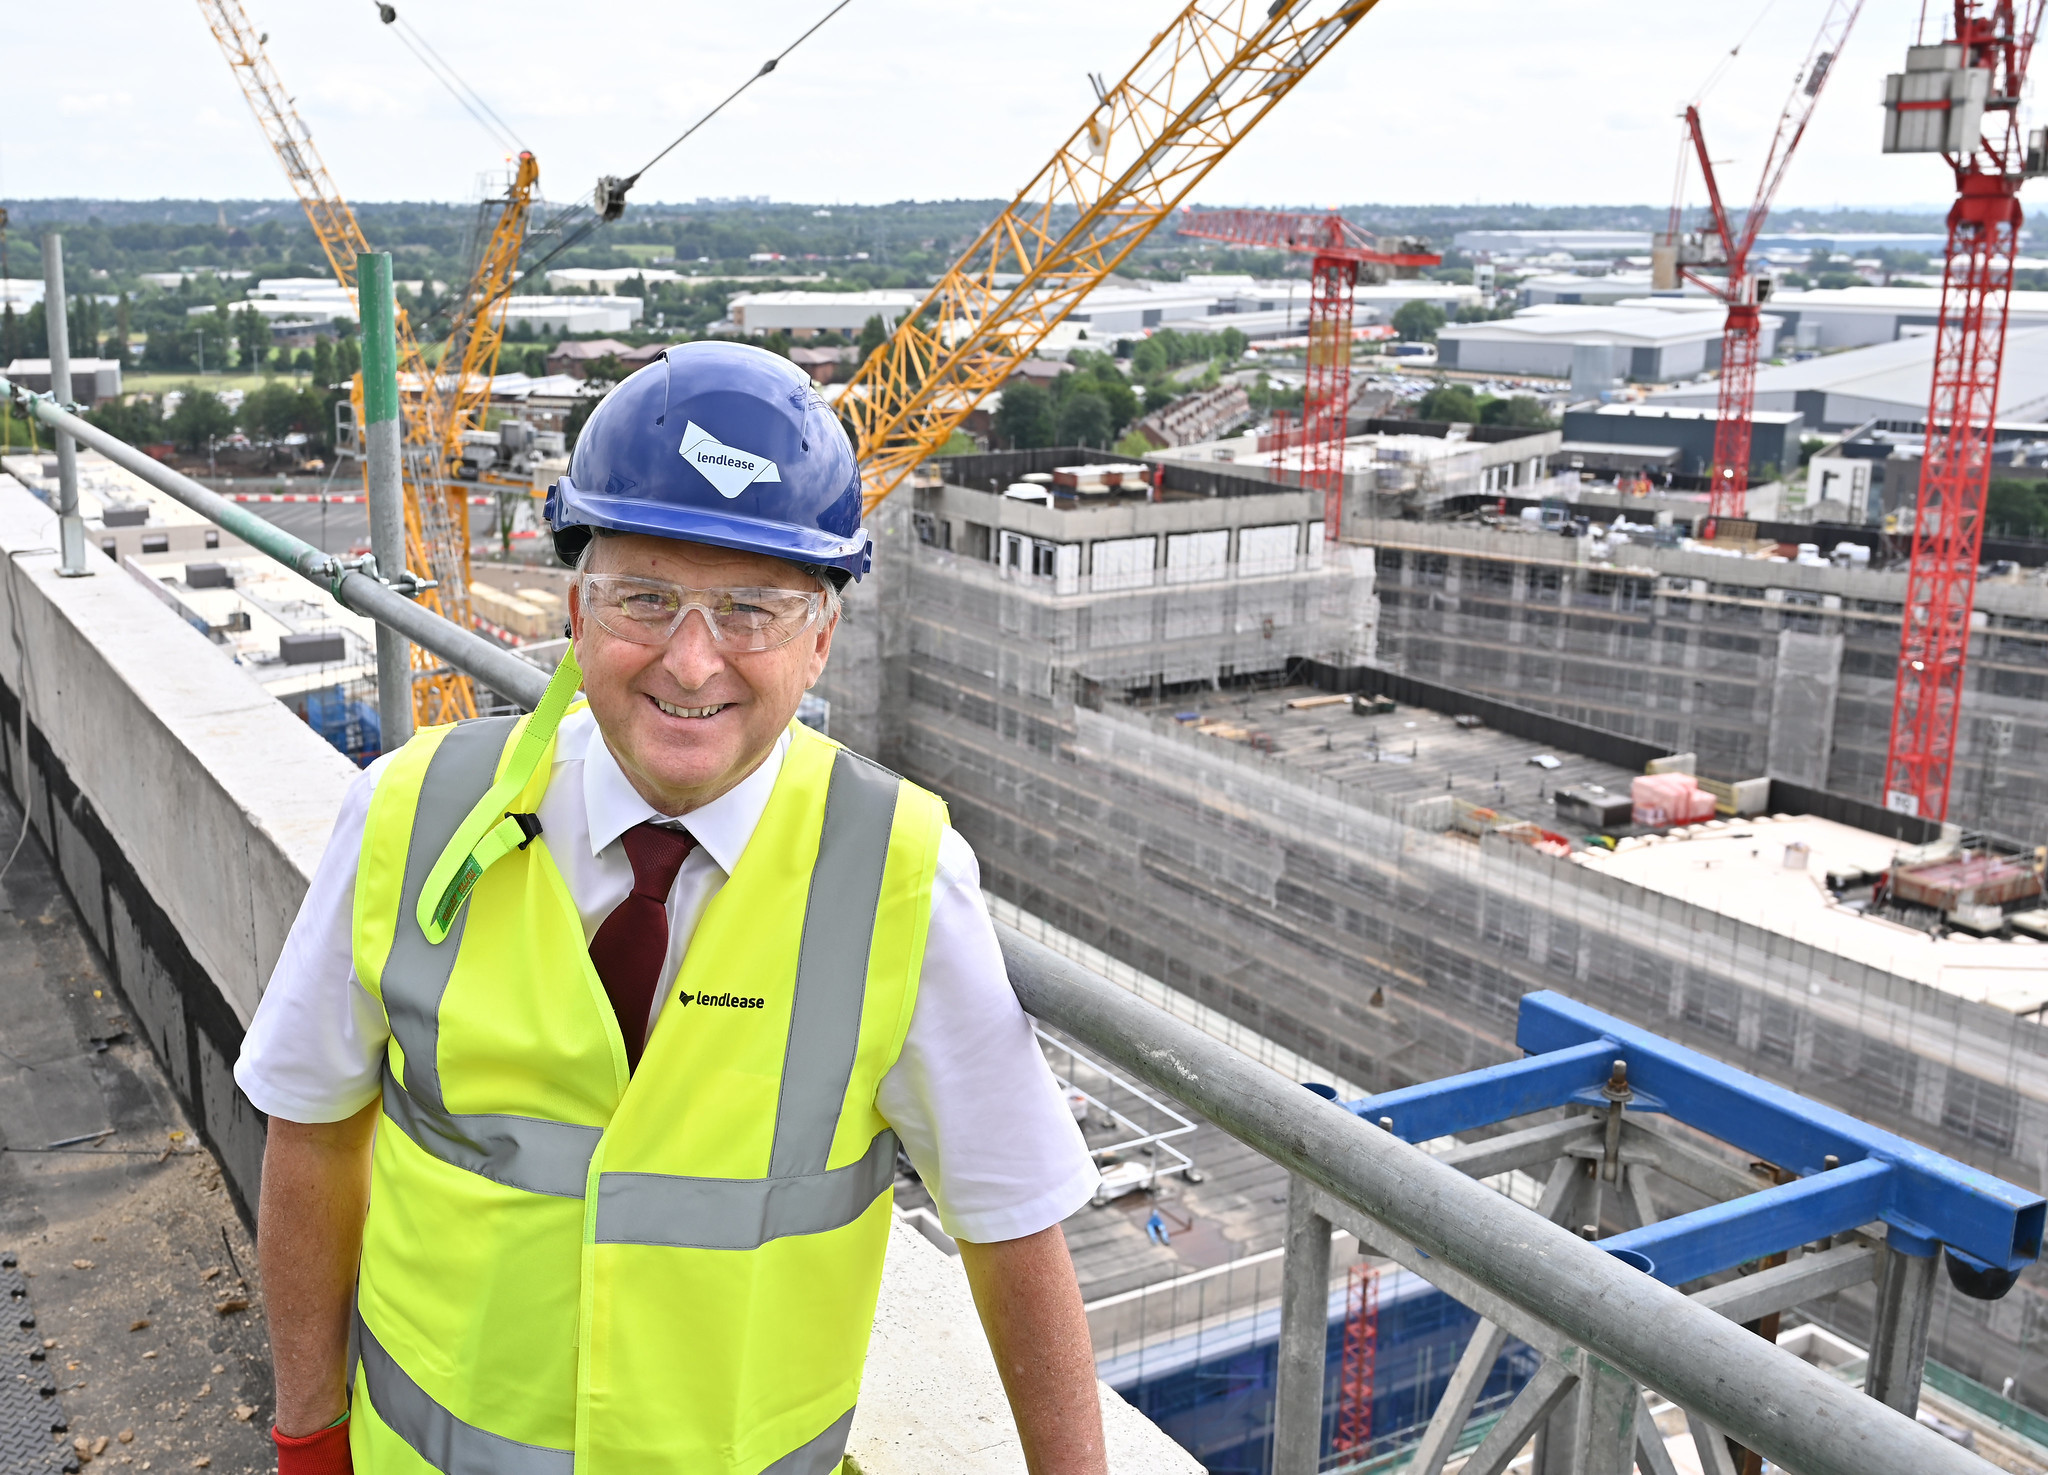 Birmingham City Council Leader Ian Ward said construction was set to be completed earlier than expected on affordable homes ©Birmingham City Council